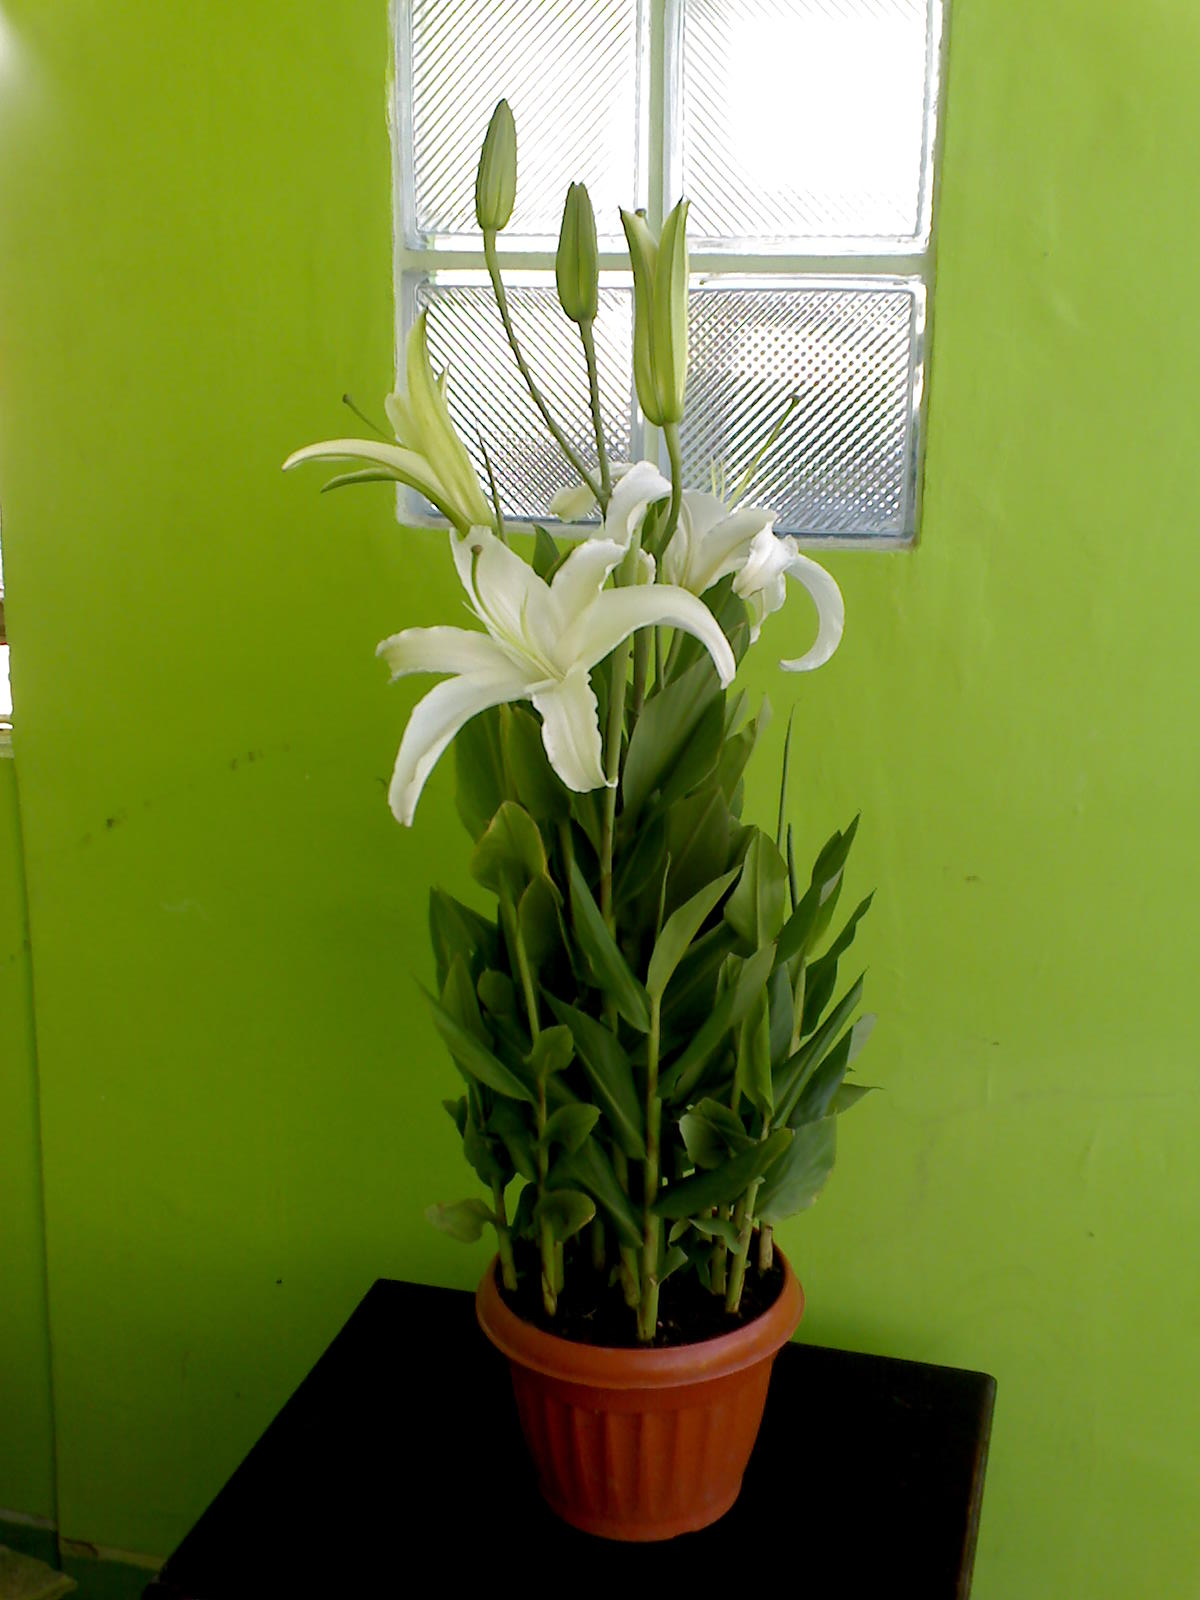 Flowers in the philippines stargazer lily white according to wikipedia lilium stargazer the stargazer lily is a hybrid lily of the oriental group oriental lilies are known for their fragrant perfume izmirmasajfo